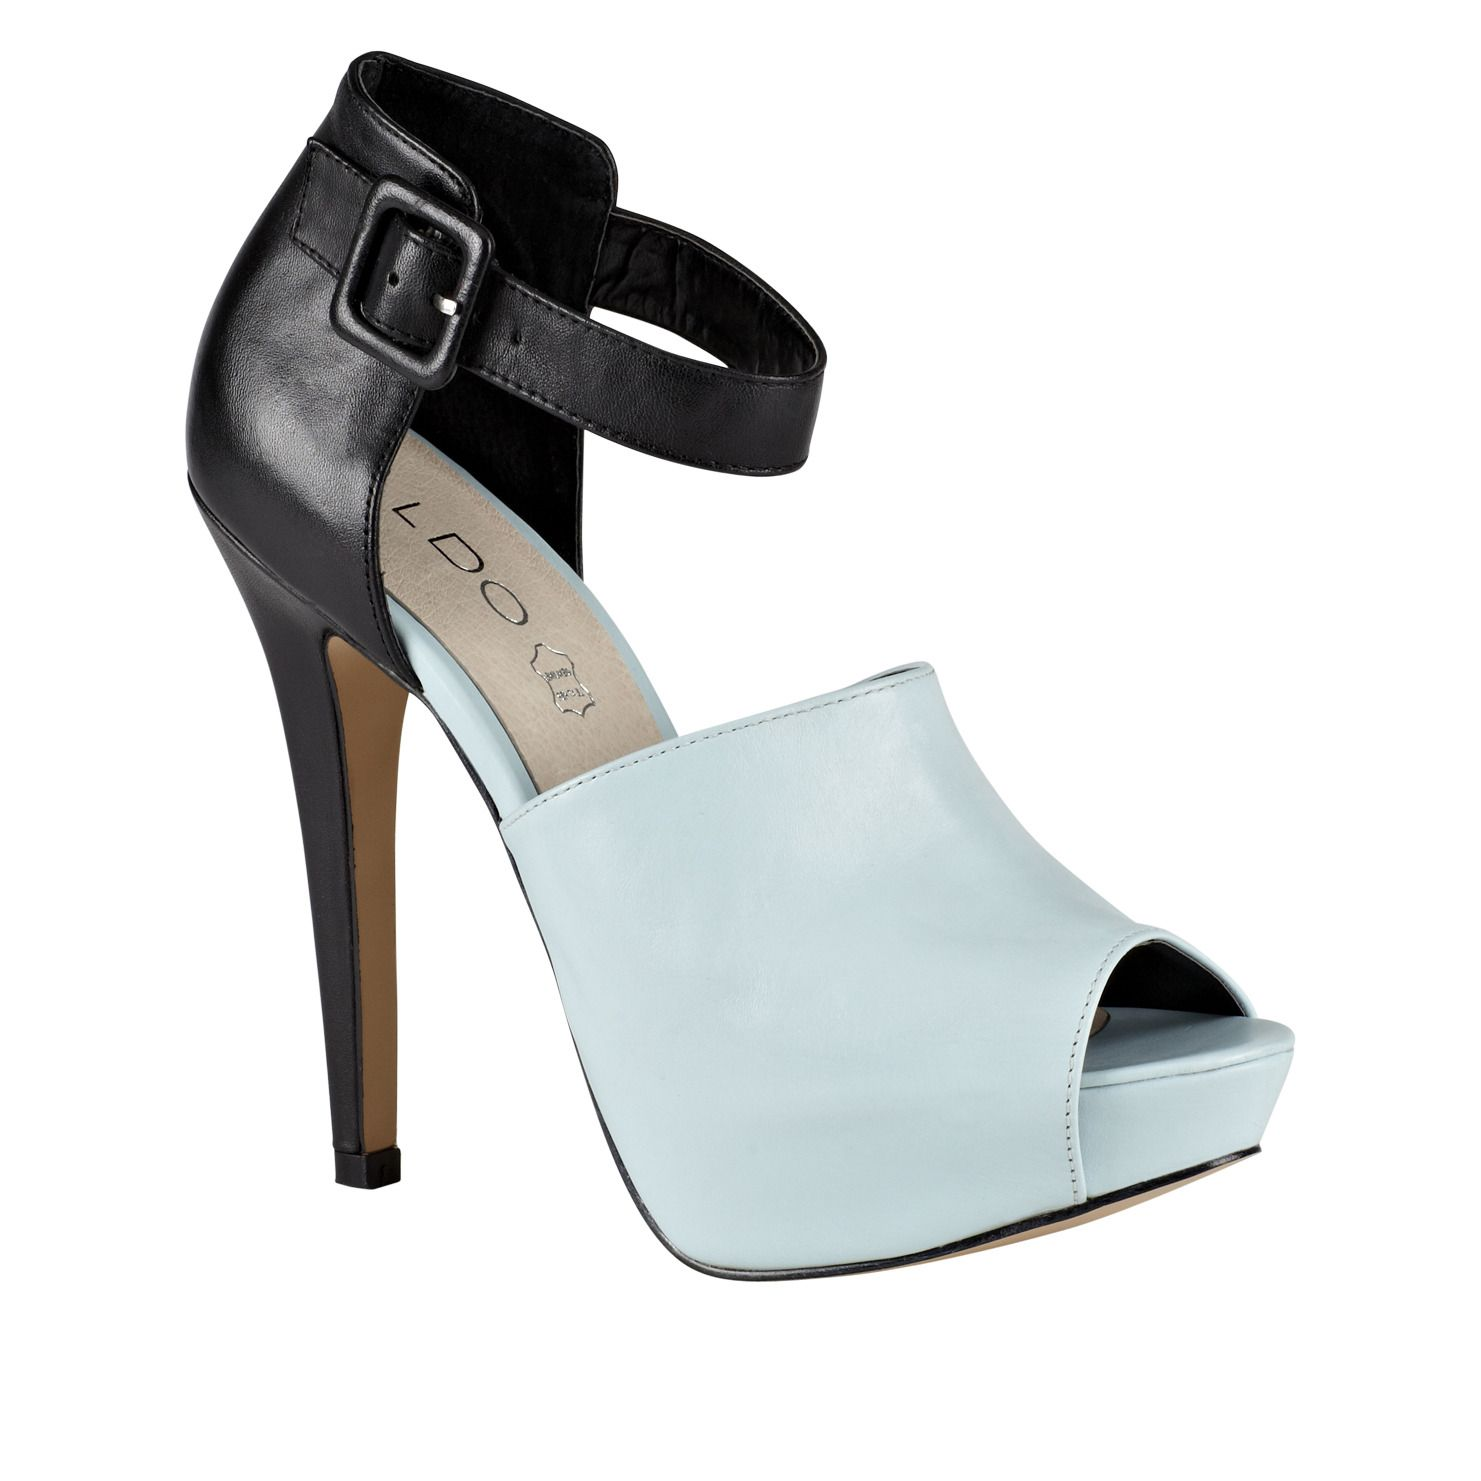 0dc2329cc5bf OLENNA - women s high heels sandals for sale at ALDO Shoes.